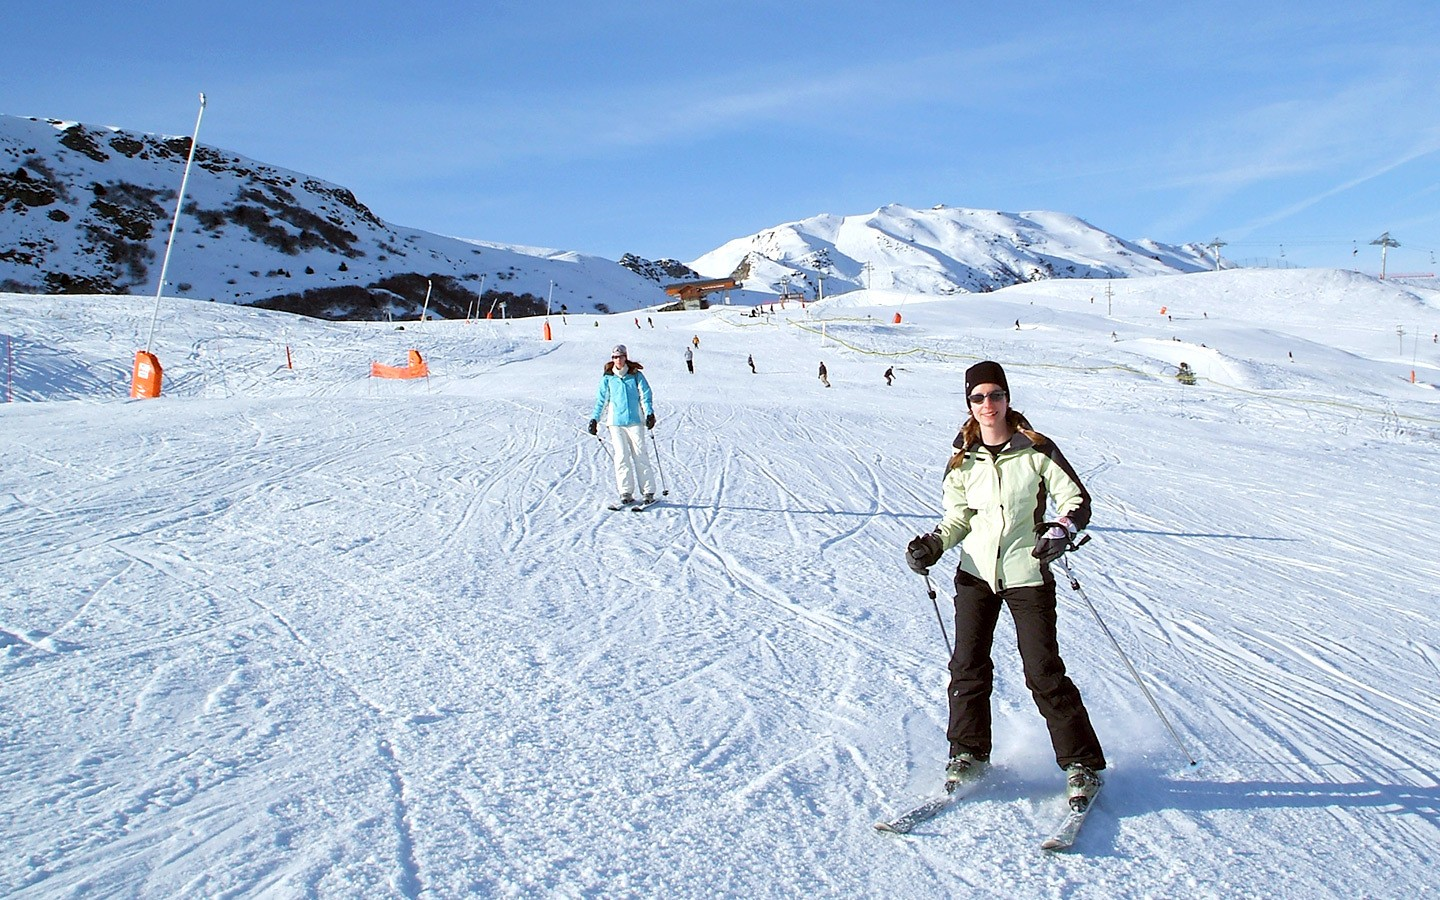 Skiing the Grive piste